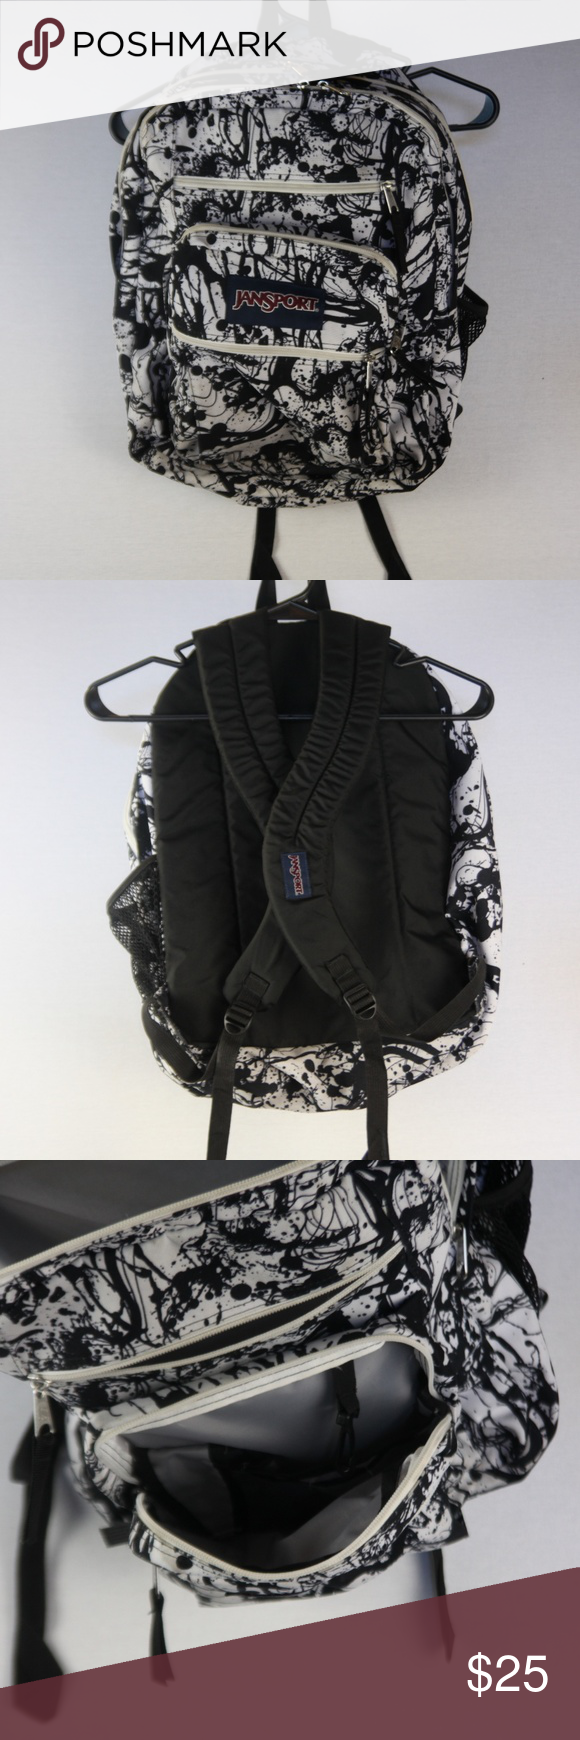 Retro Jansport Backpack Black and White Abstract | Black